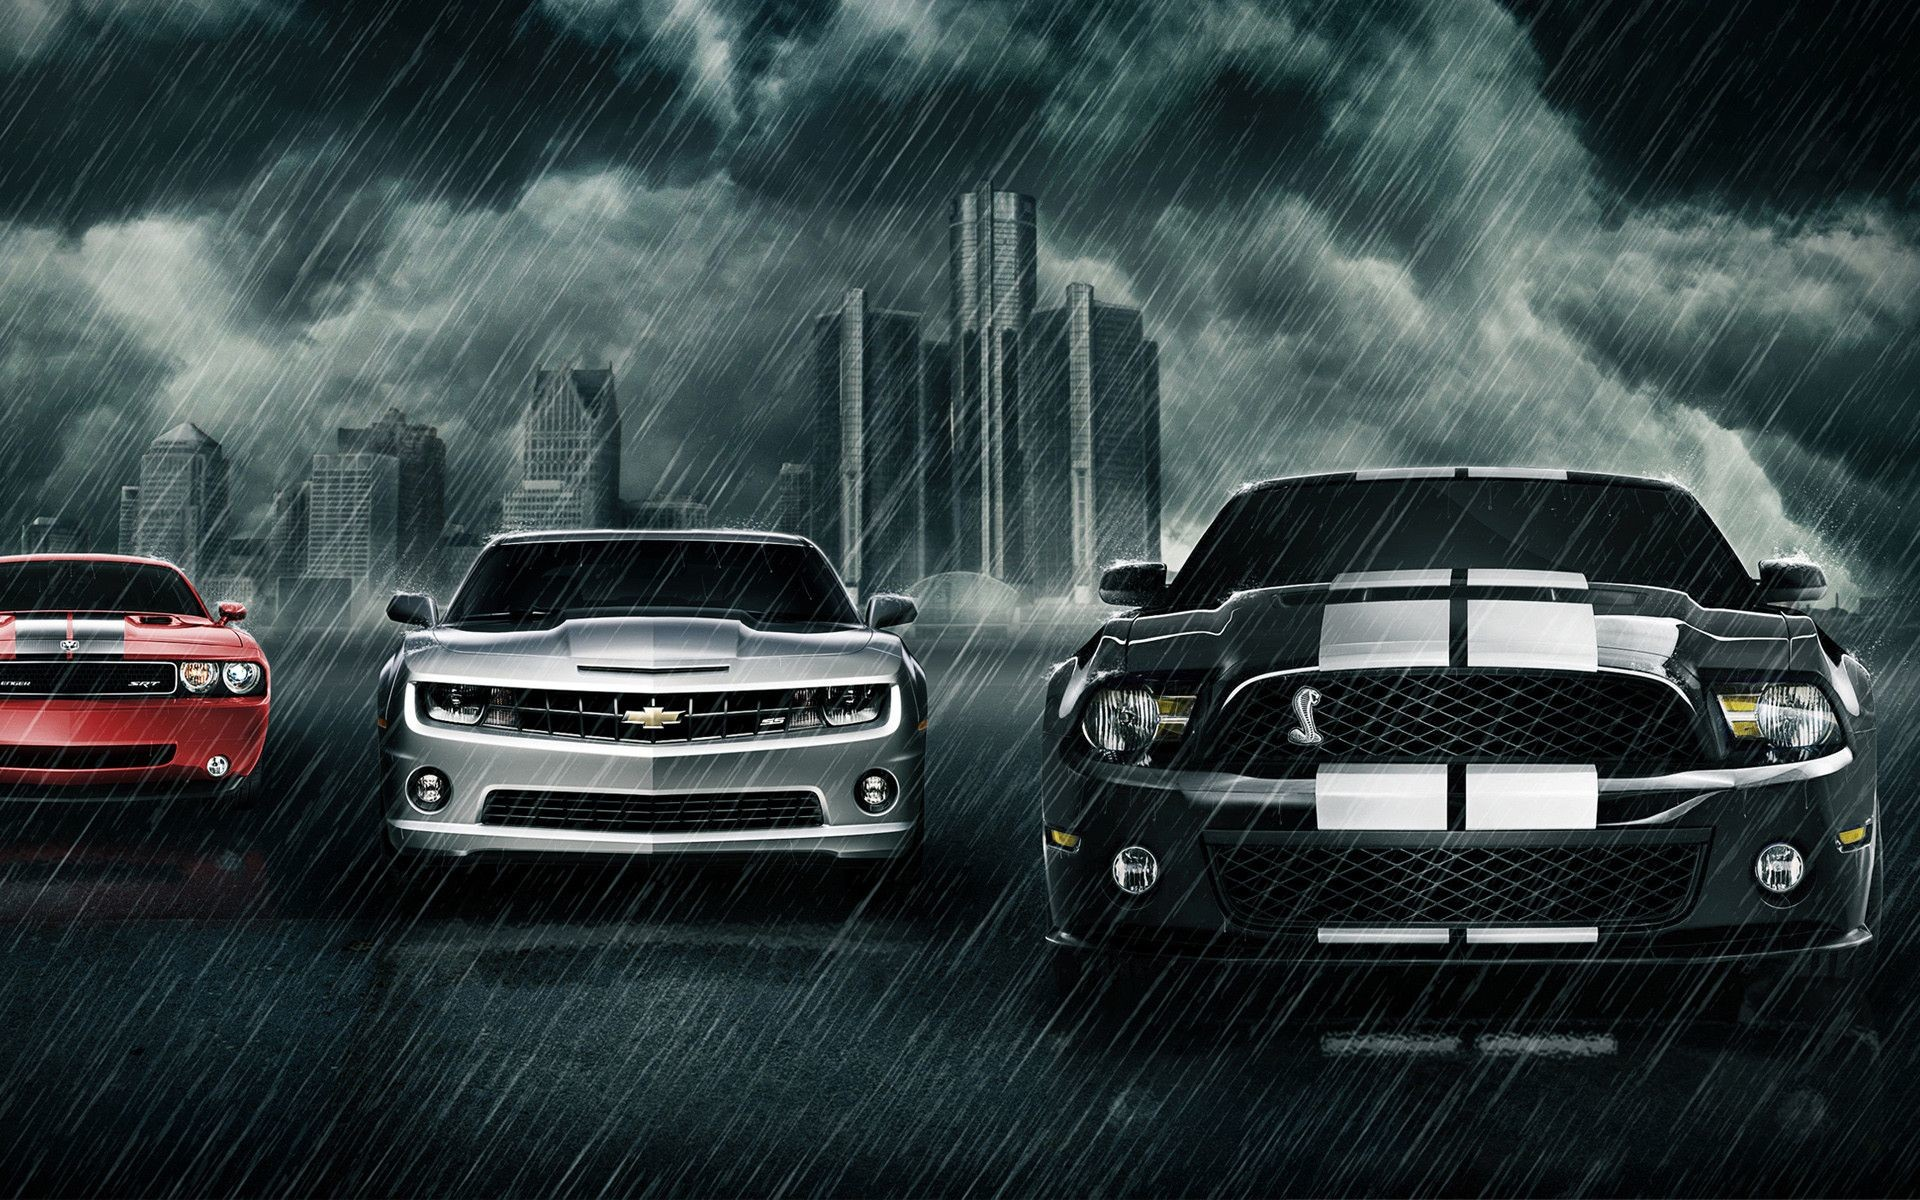 1920x1200 Images Of American Muscle Cars